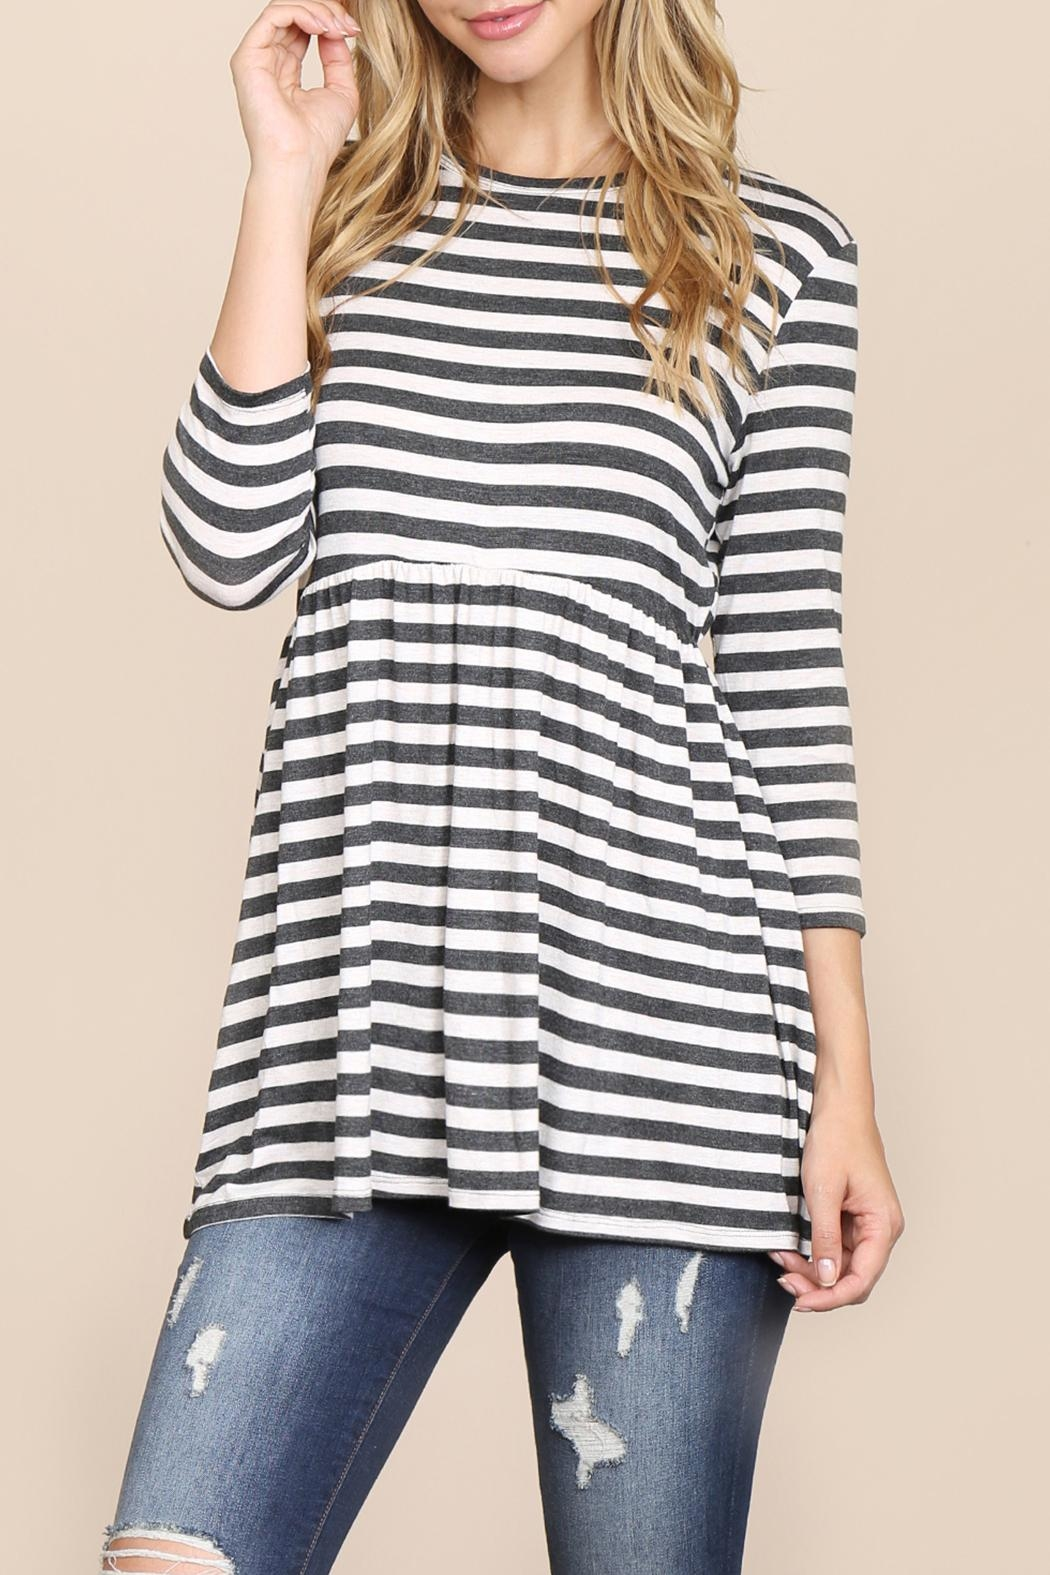 Riah Fashion Quarter-Sleeve Babydoll-Striped-Tunic - Main Image